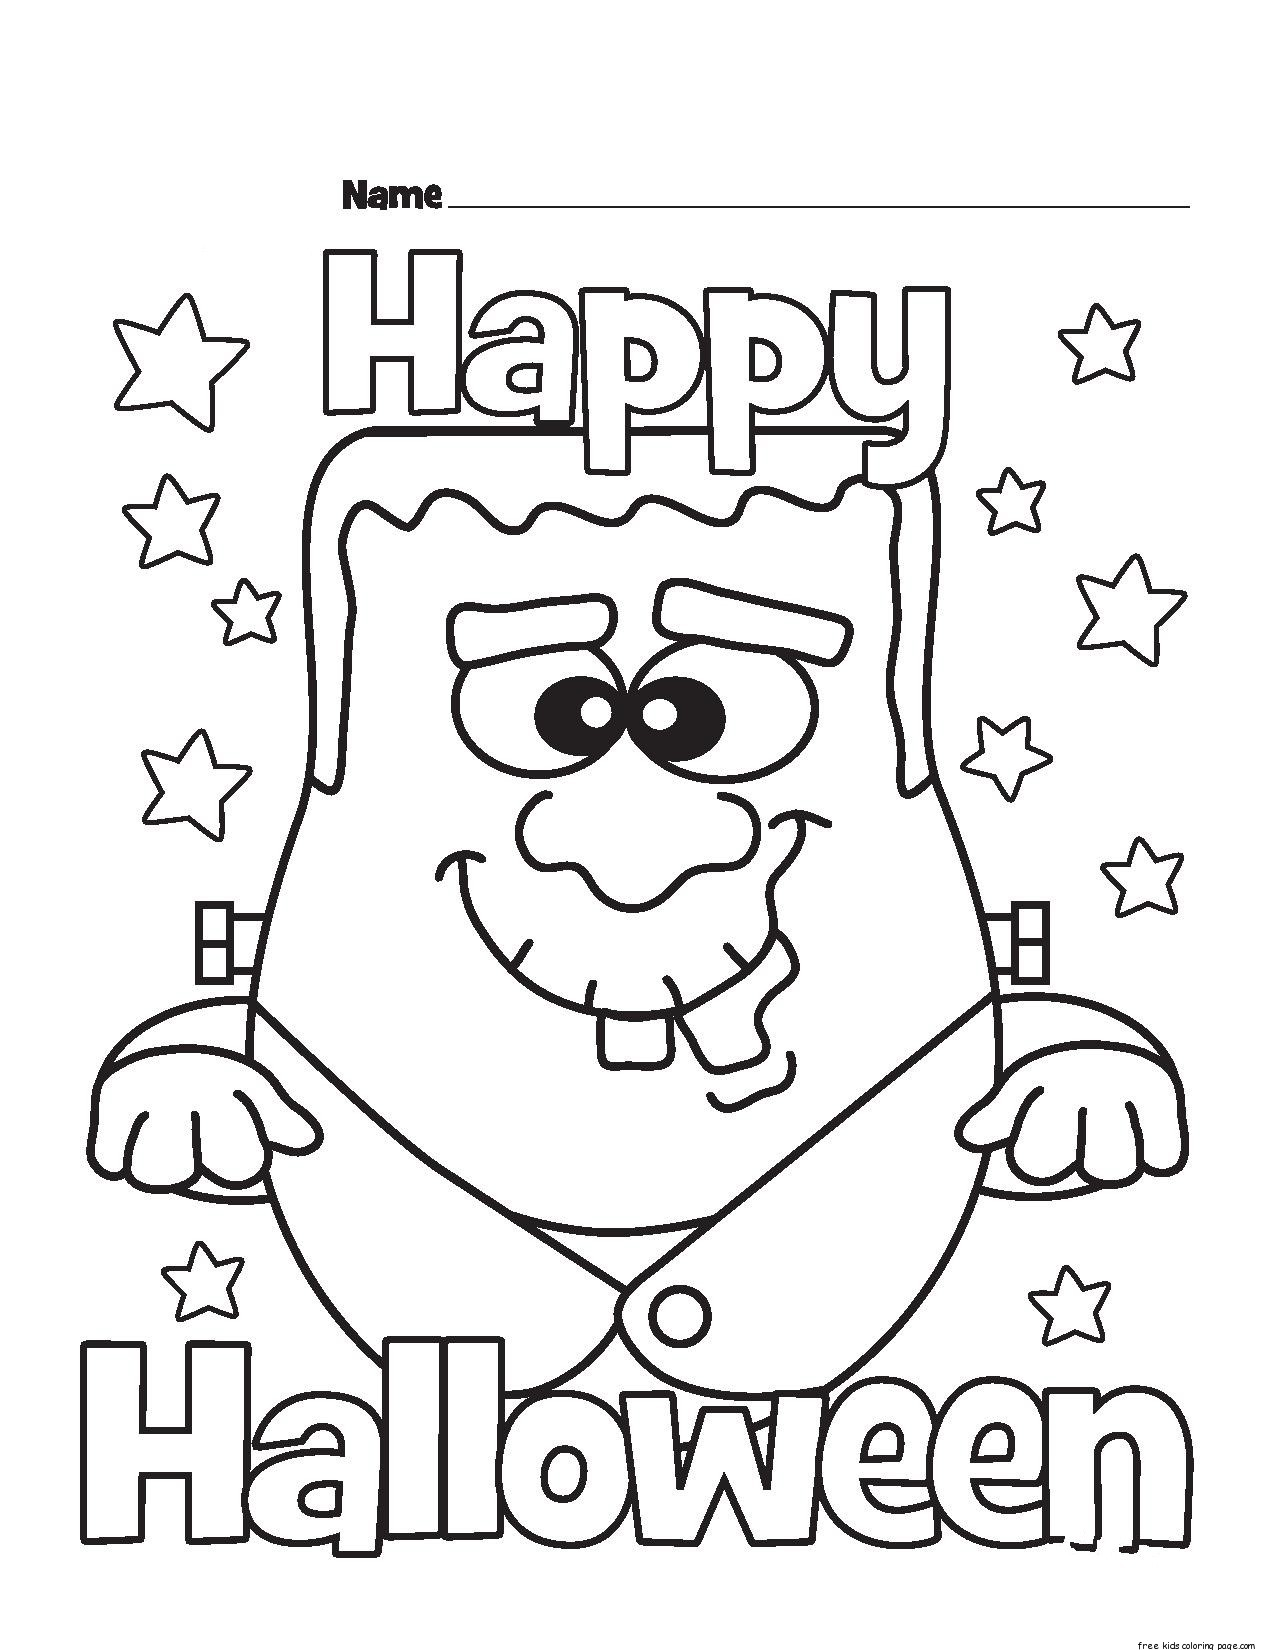 Halloween Happy Monster Coloring Pages For Kidsfree Printable Coloring Pages For Kids